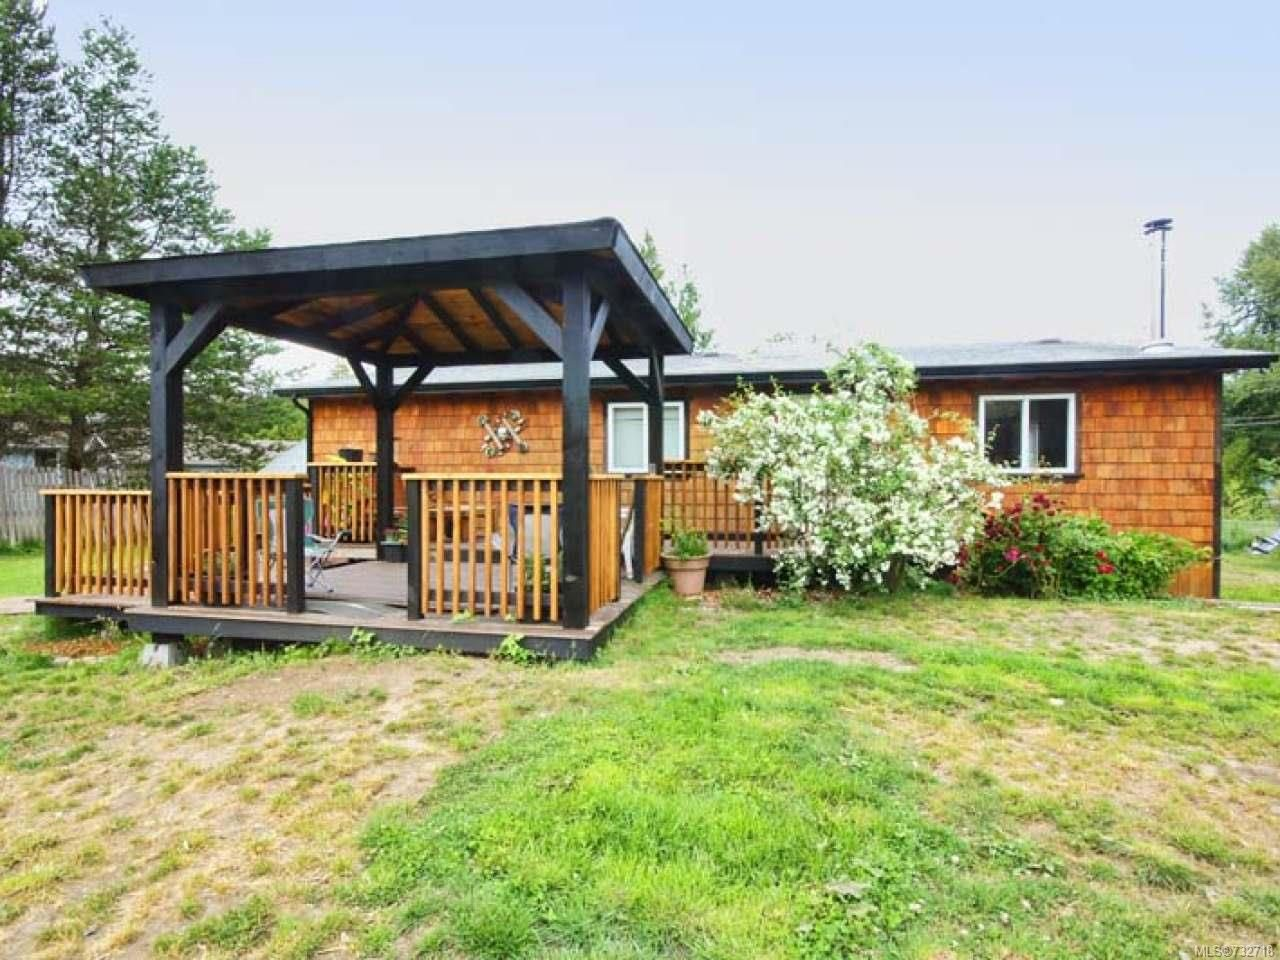 Photo 30: Photos: 921 POPLAR Way in ERRINGTON: PQ Errington/Coombs/Hilliers Manufactured Home for sale (Parksville/Qualicum)  : MLS®# 732718